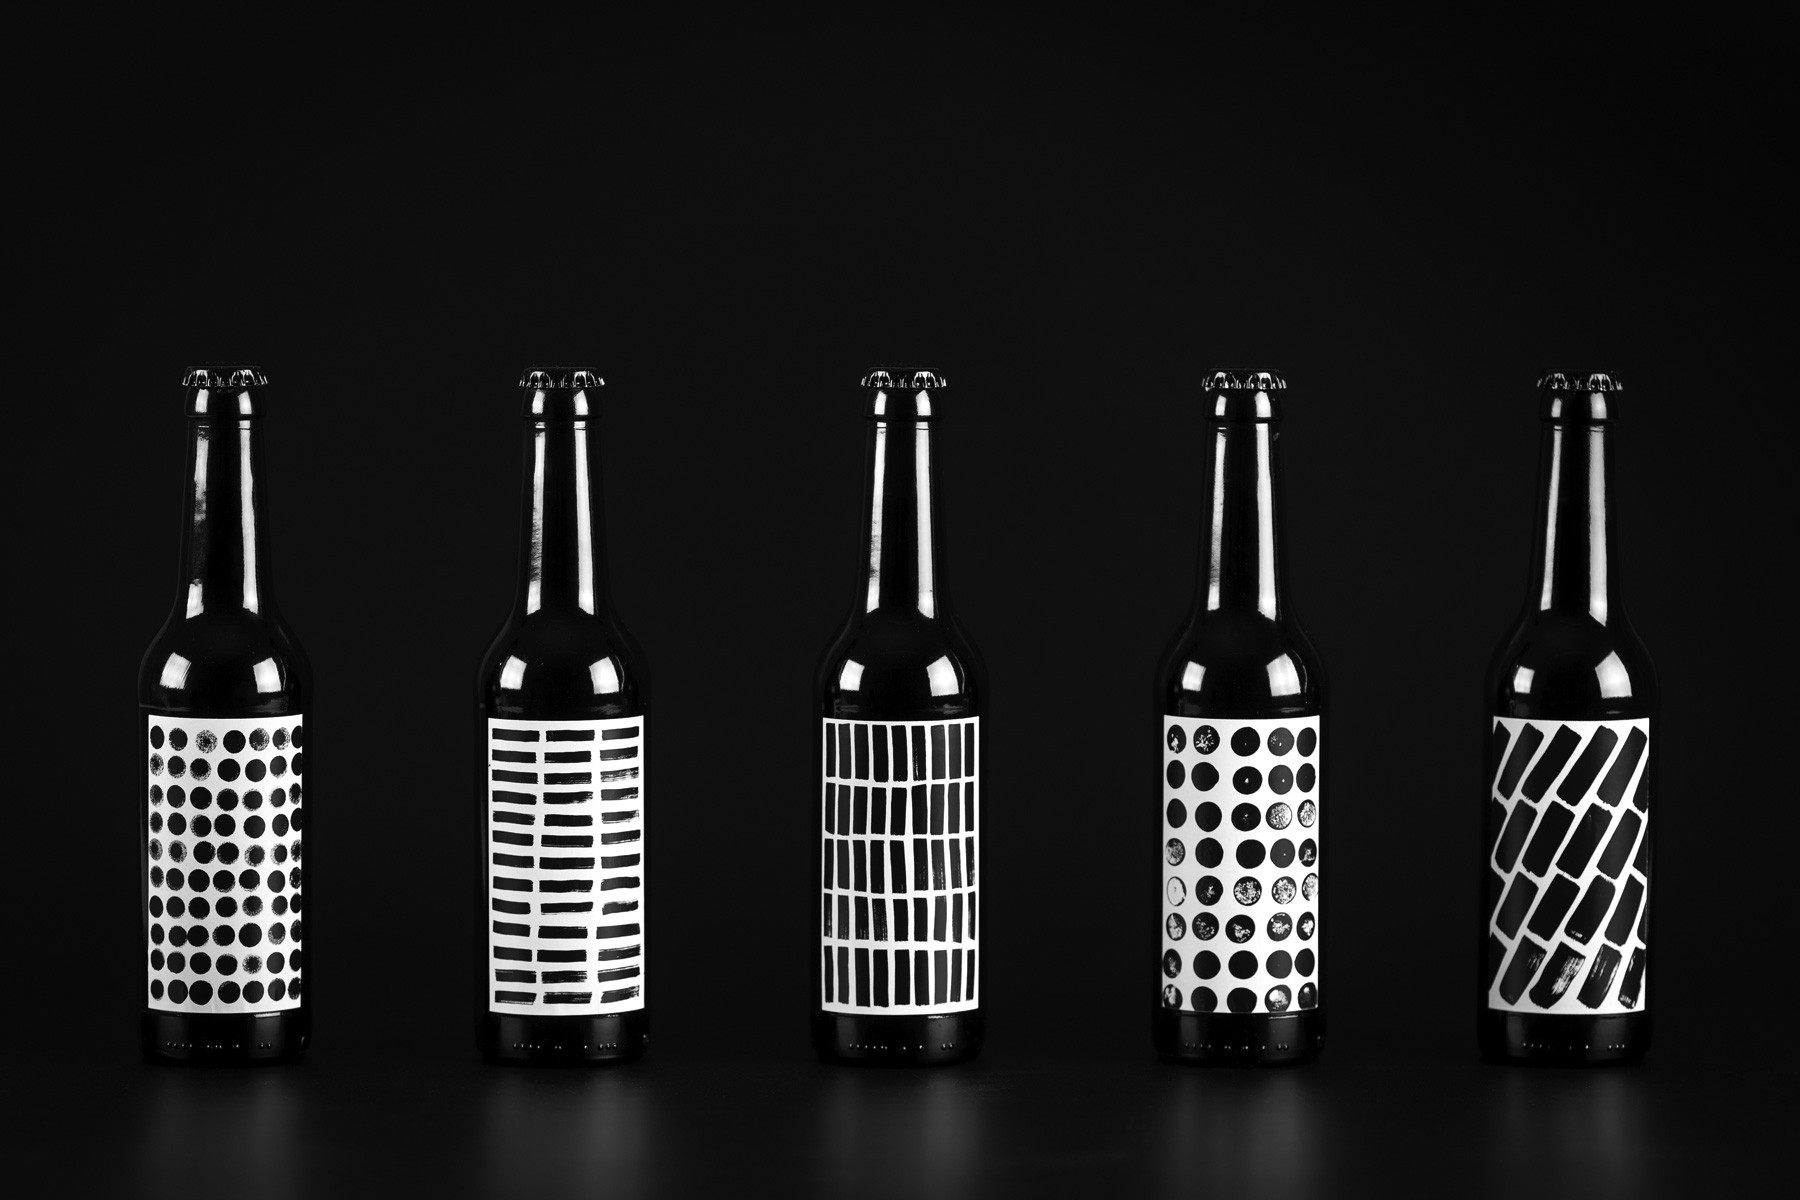 Designers from St. Petersburg Design Name Beer After Own Art Movement, Terminalizm